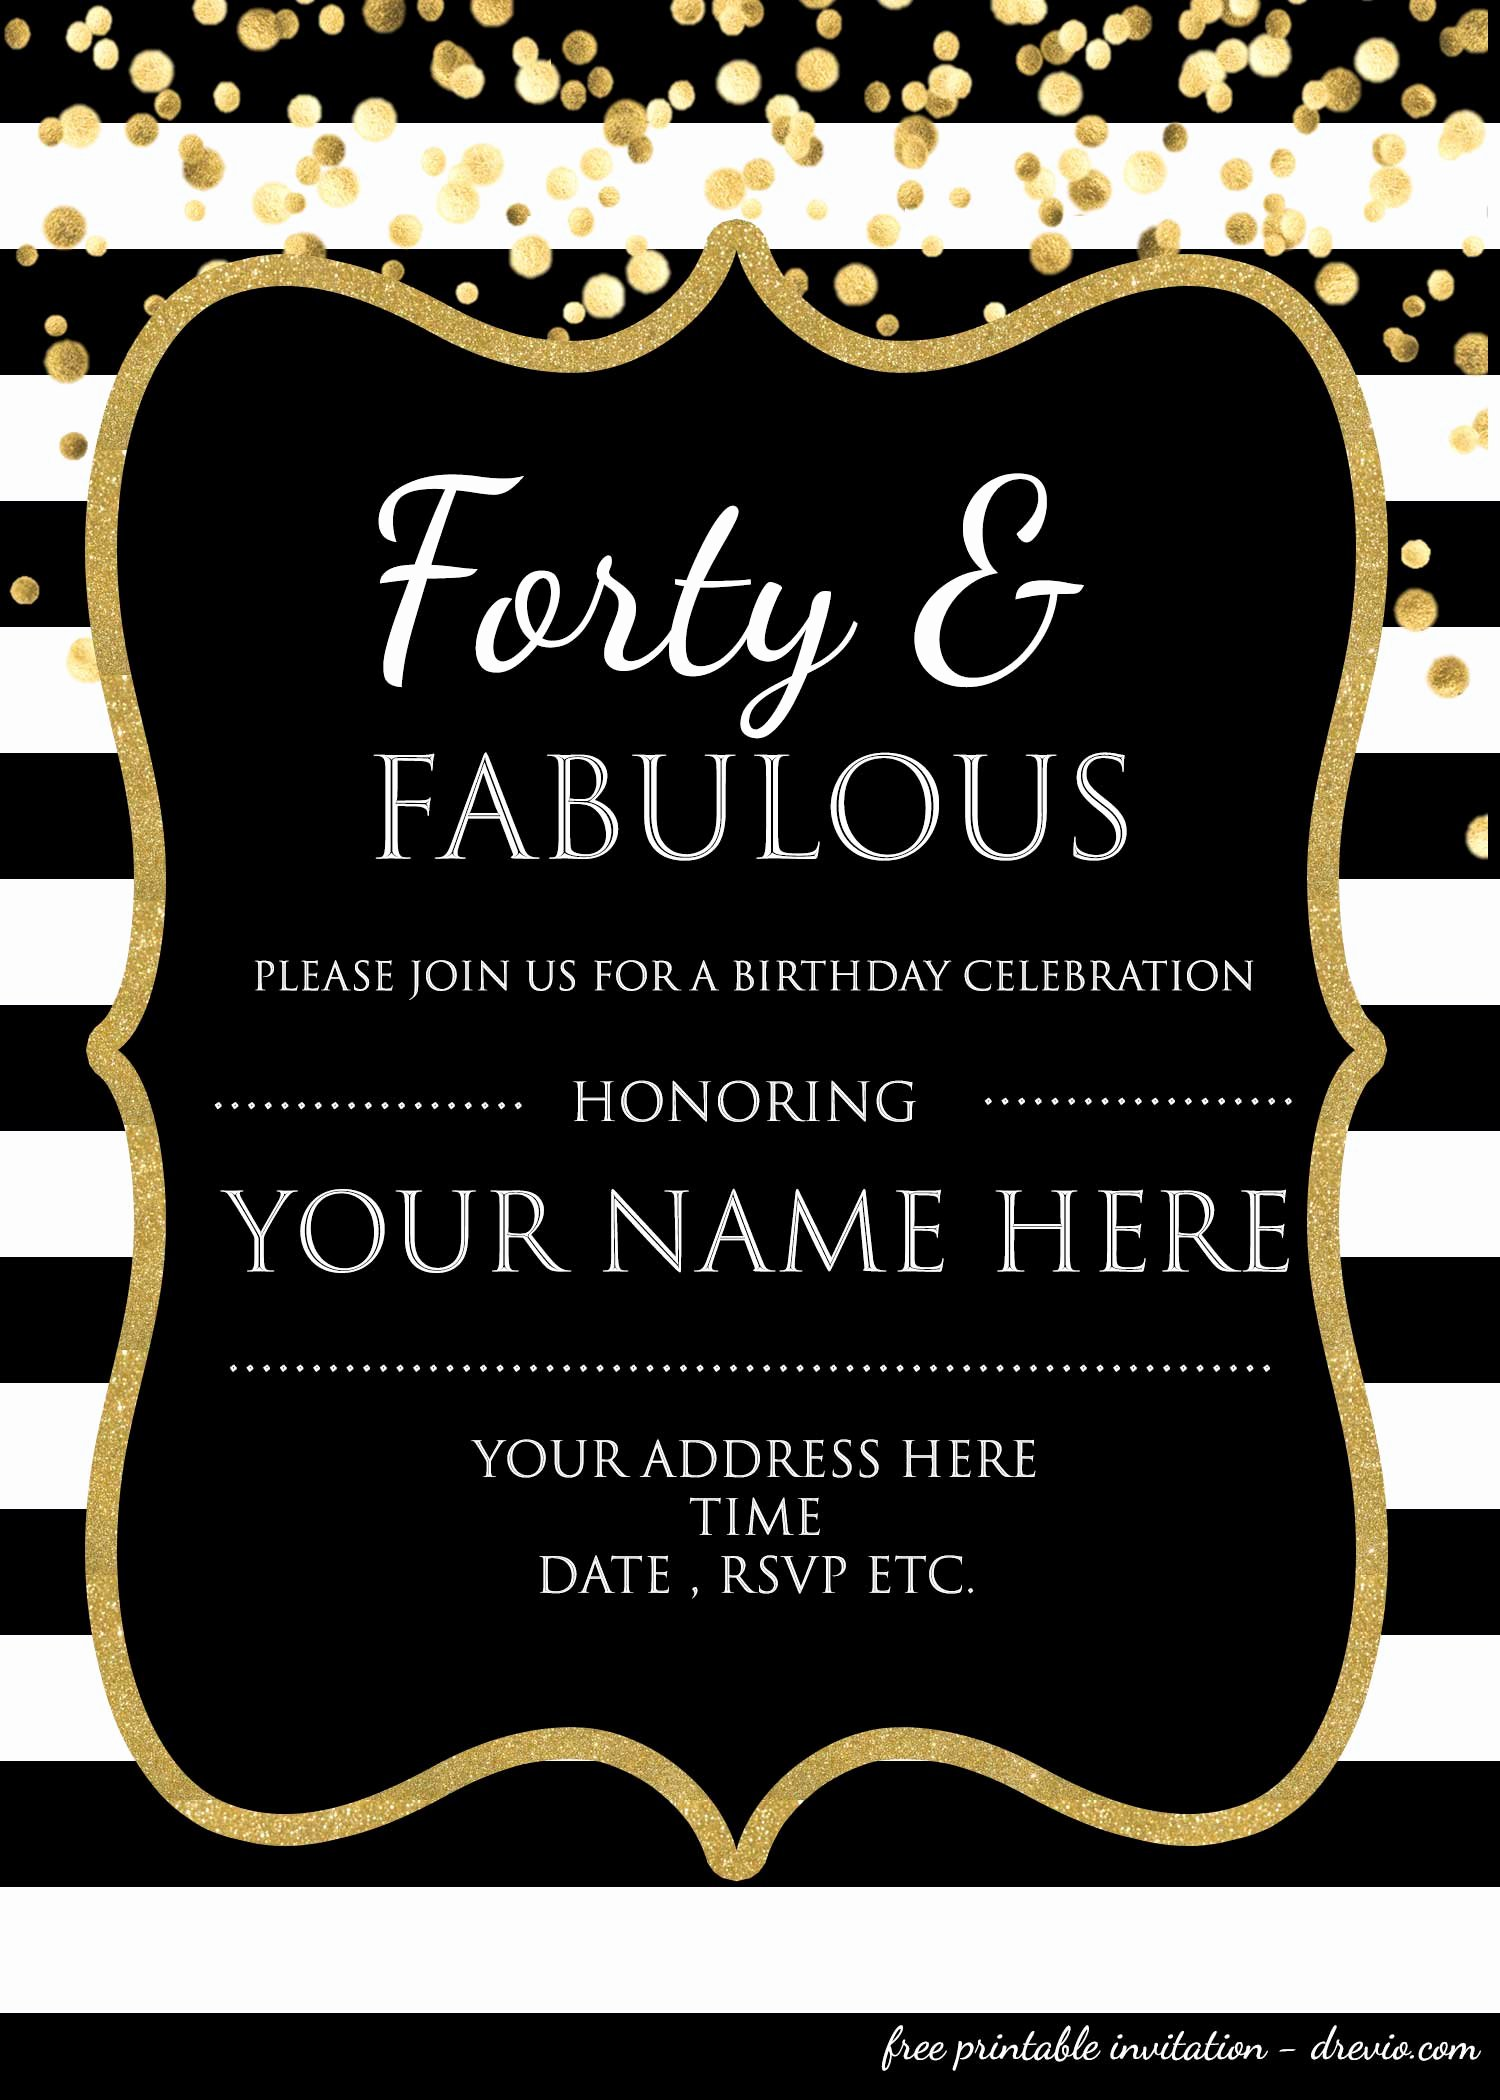 Editable Birthday Invitations Templates Free Fresh forty & Fabulous 40th Birthday Invitation Template – Psd